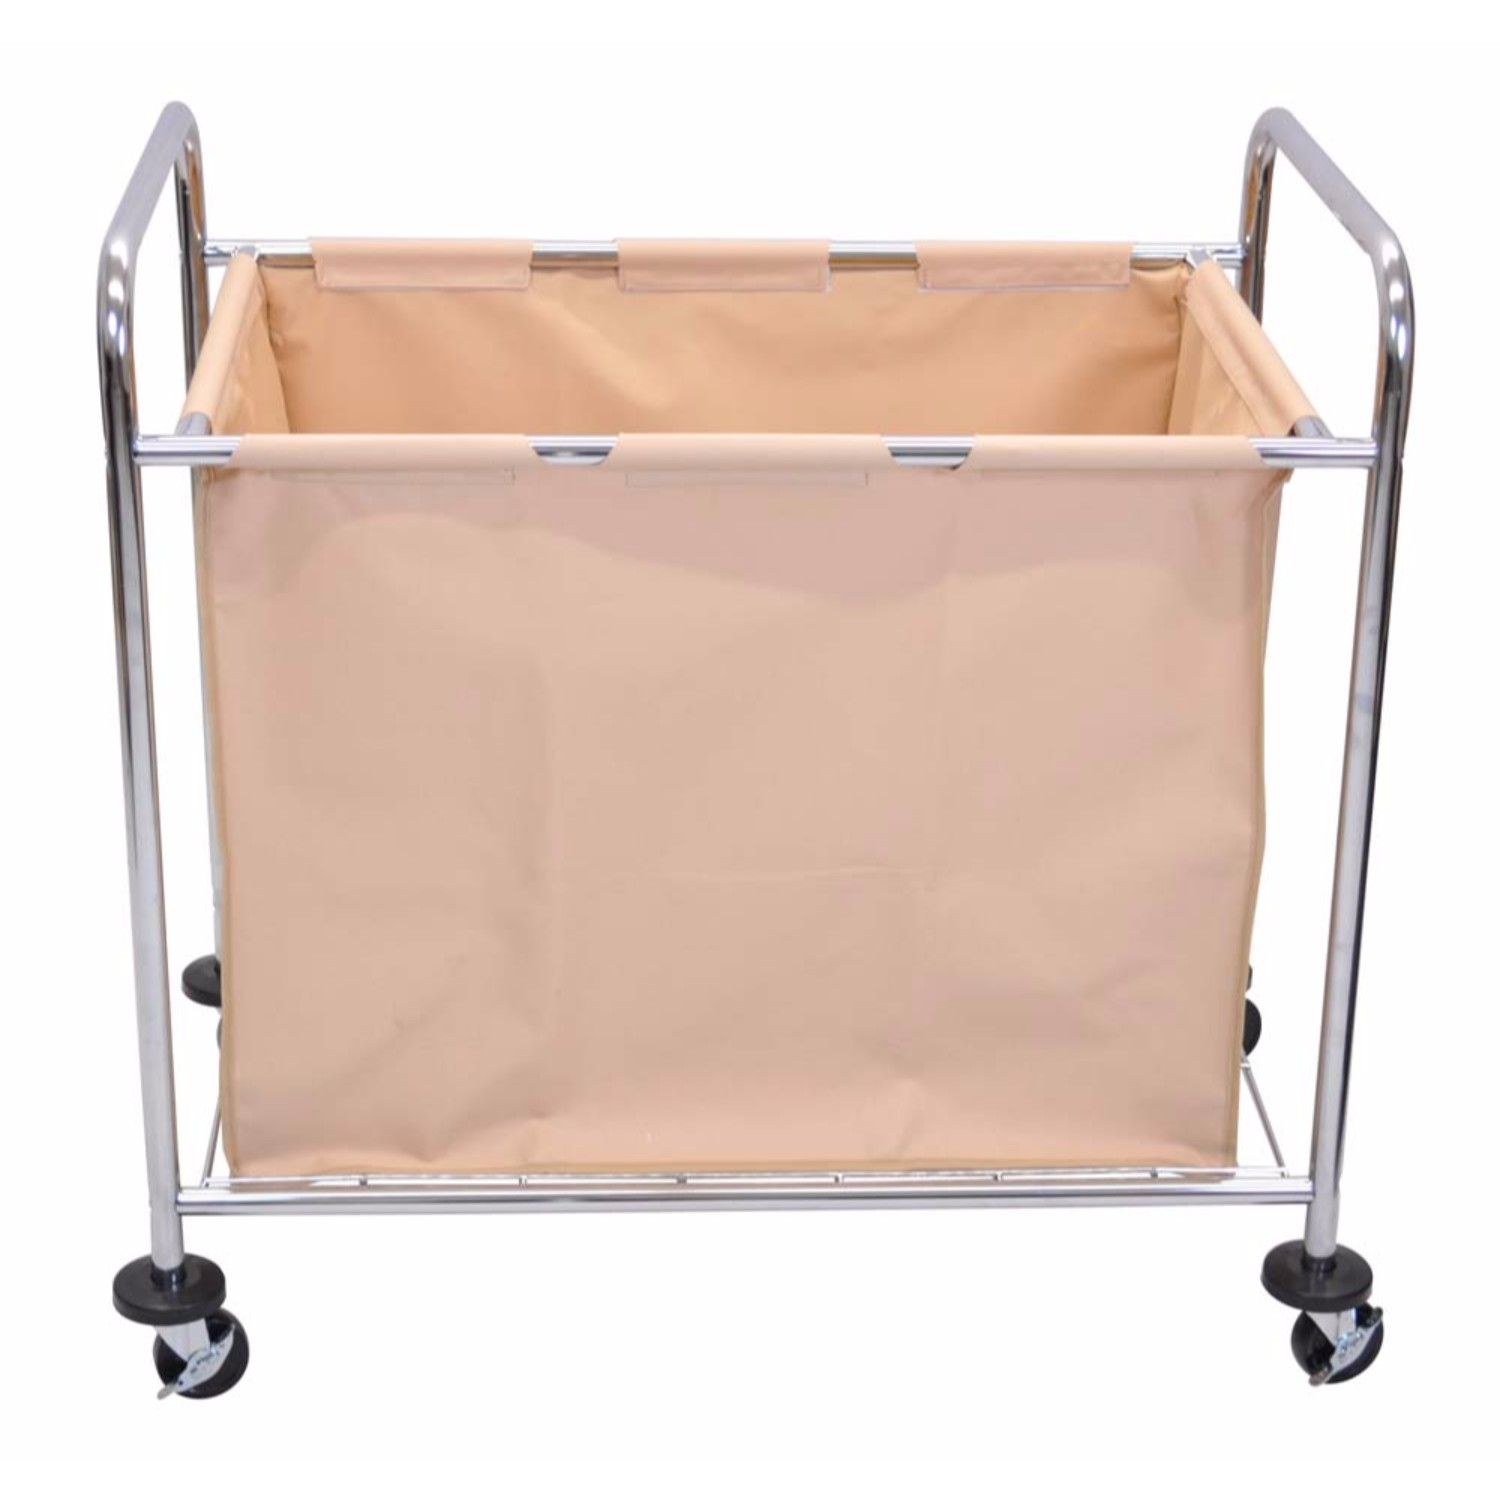 Chrome Laundry Basket Luxor Laundry Cart With Chrome Plated Steel Frame And